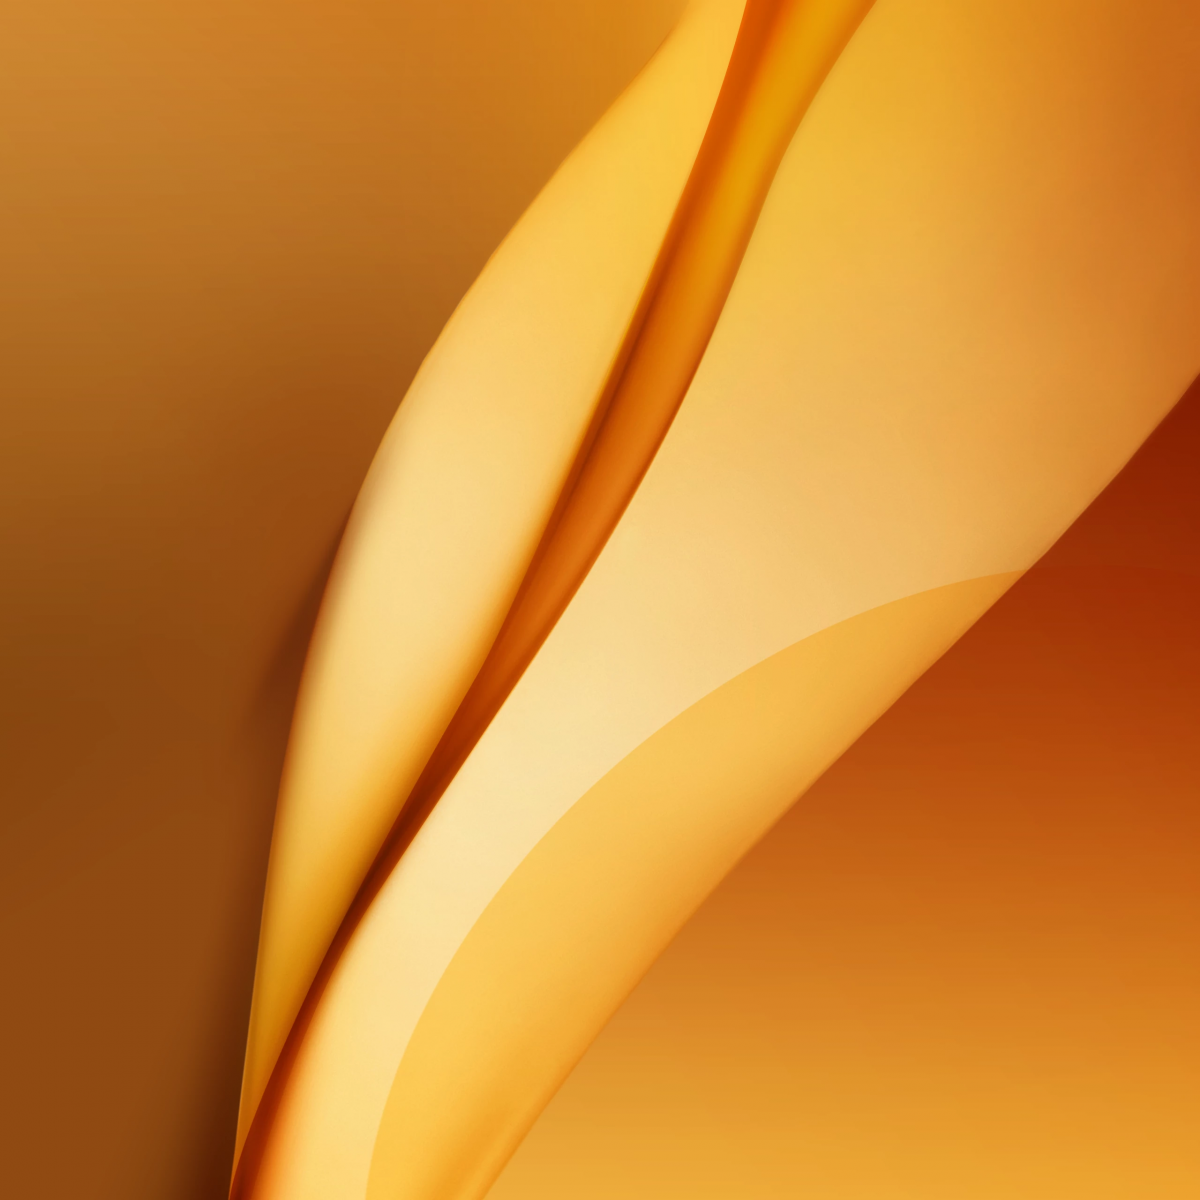 Download 6 Samsung Galaxy Note 5 wallpapers here 1200x1200